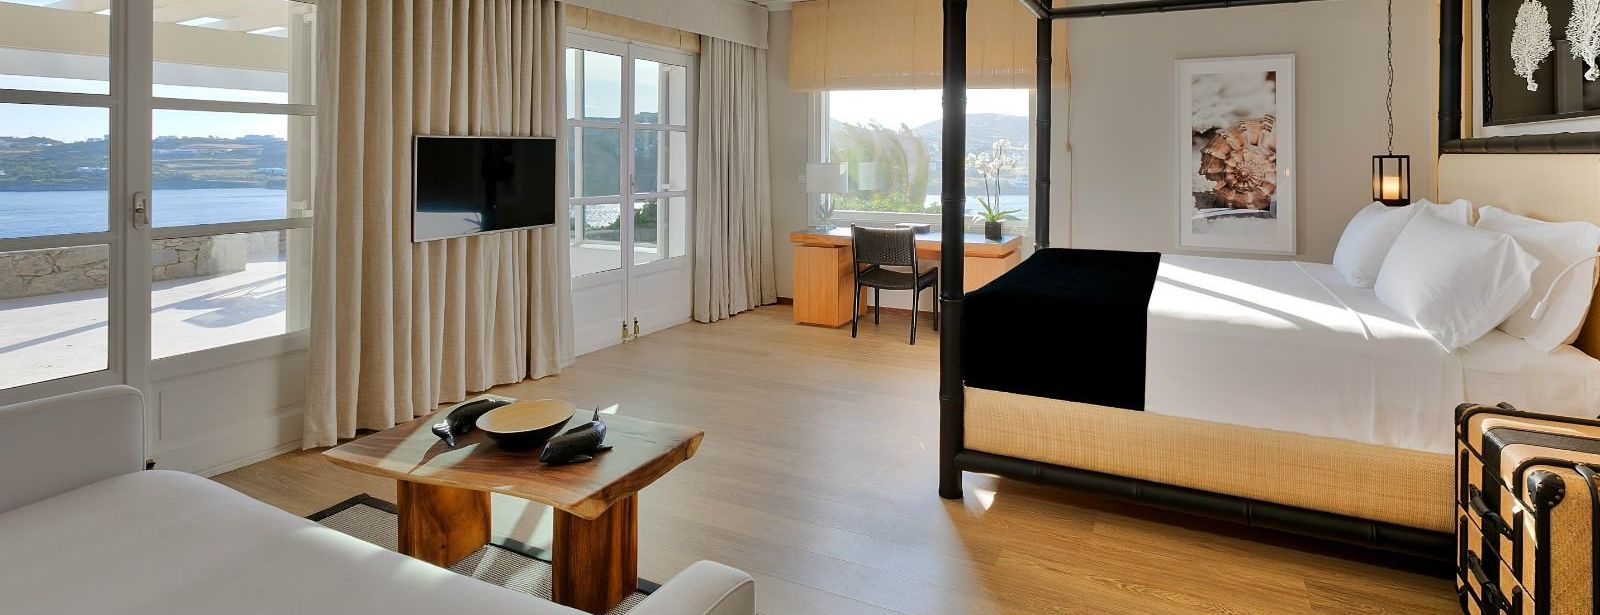 Seaview Suite bedroom with private balcony at Santa Marina Resort Mykonos Luxury Hotel_191